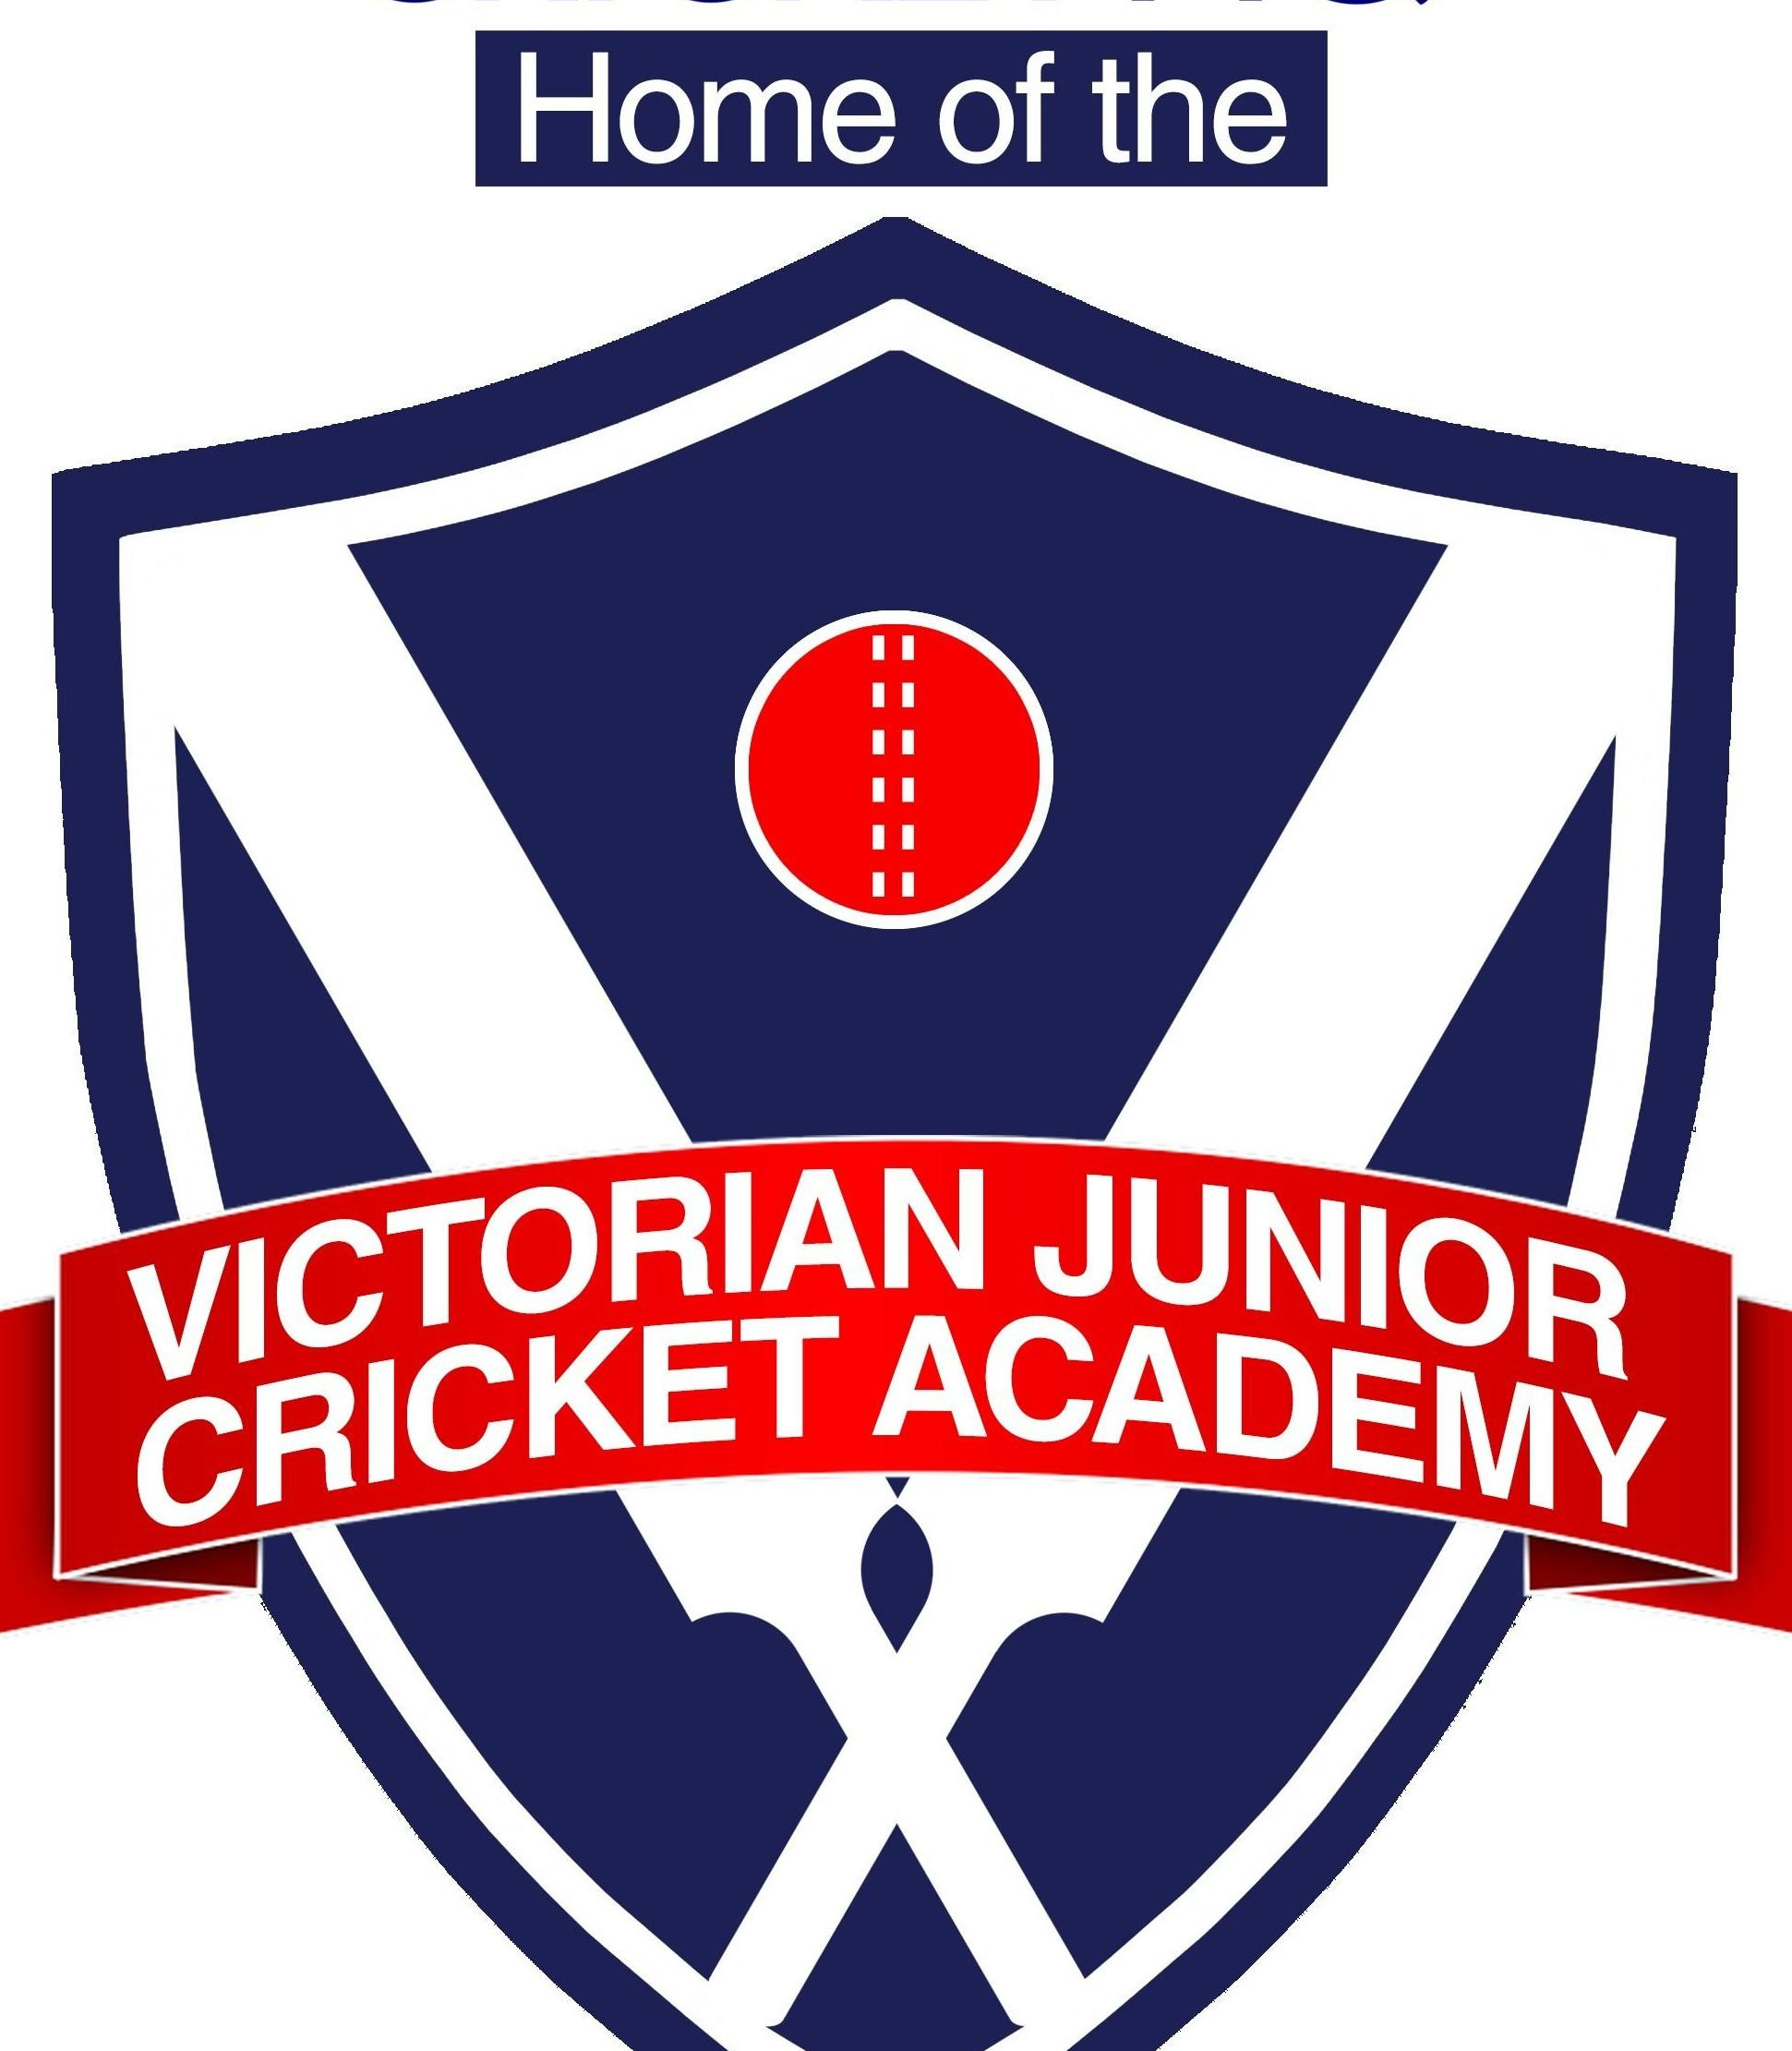 VICTORIAN JUNIOR CRICKET ACADEMY